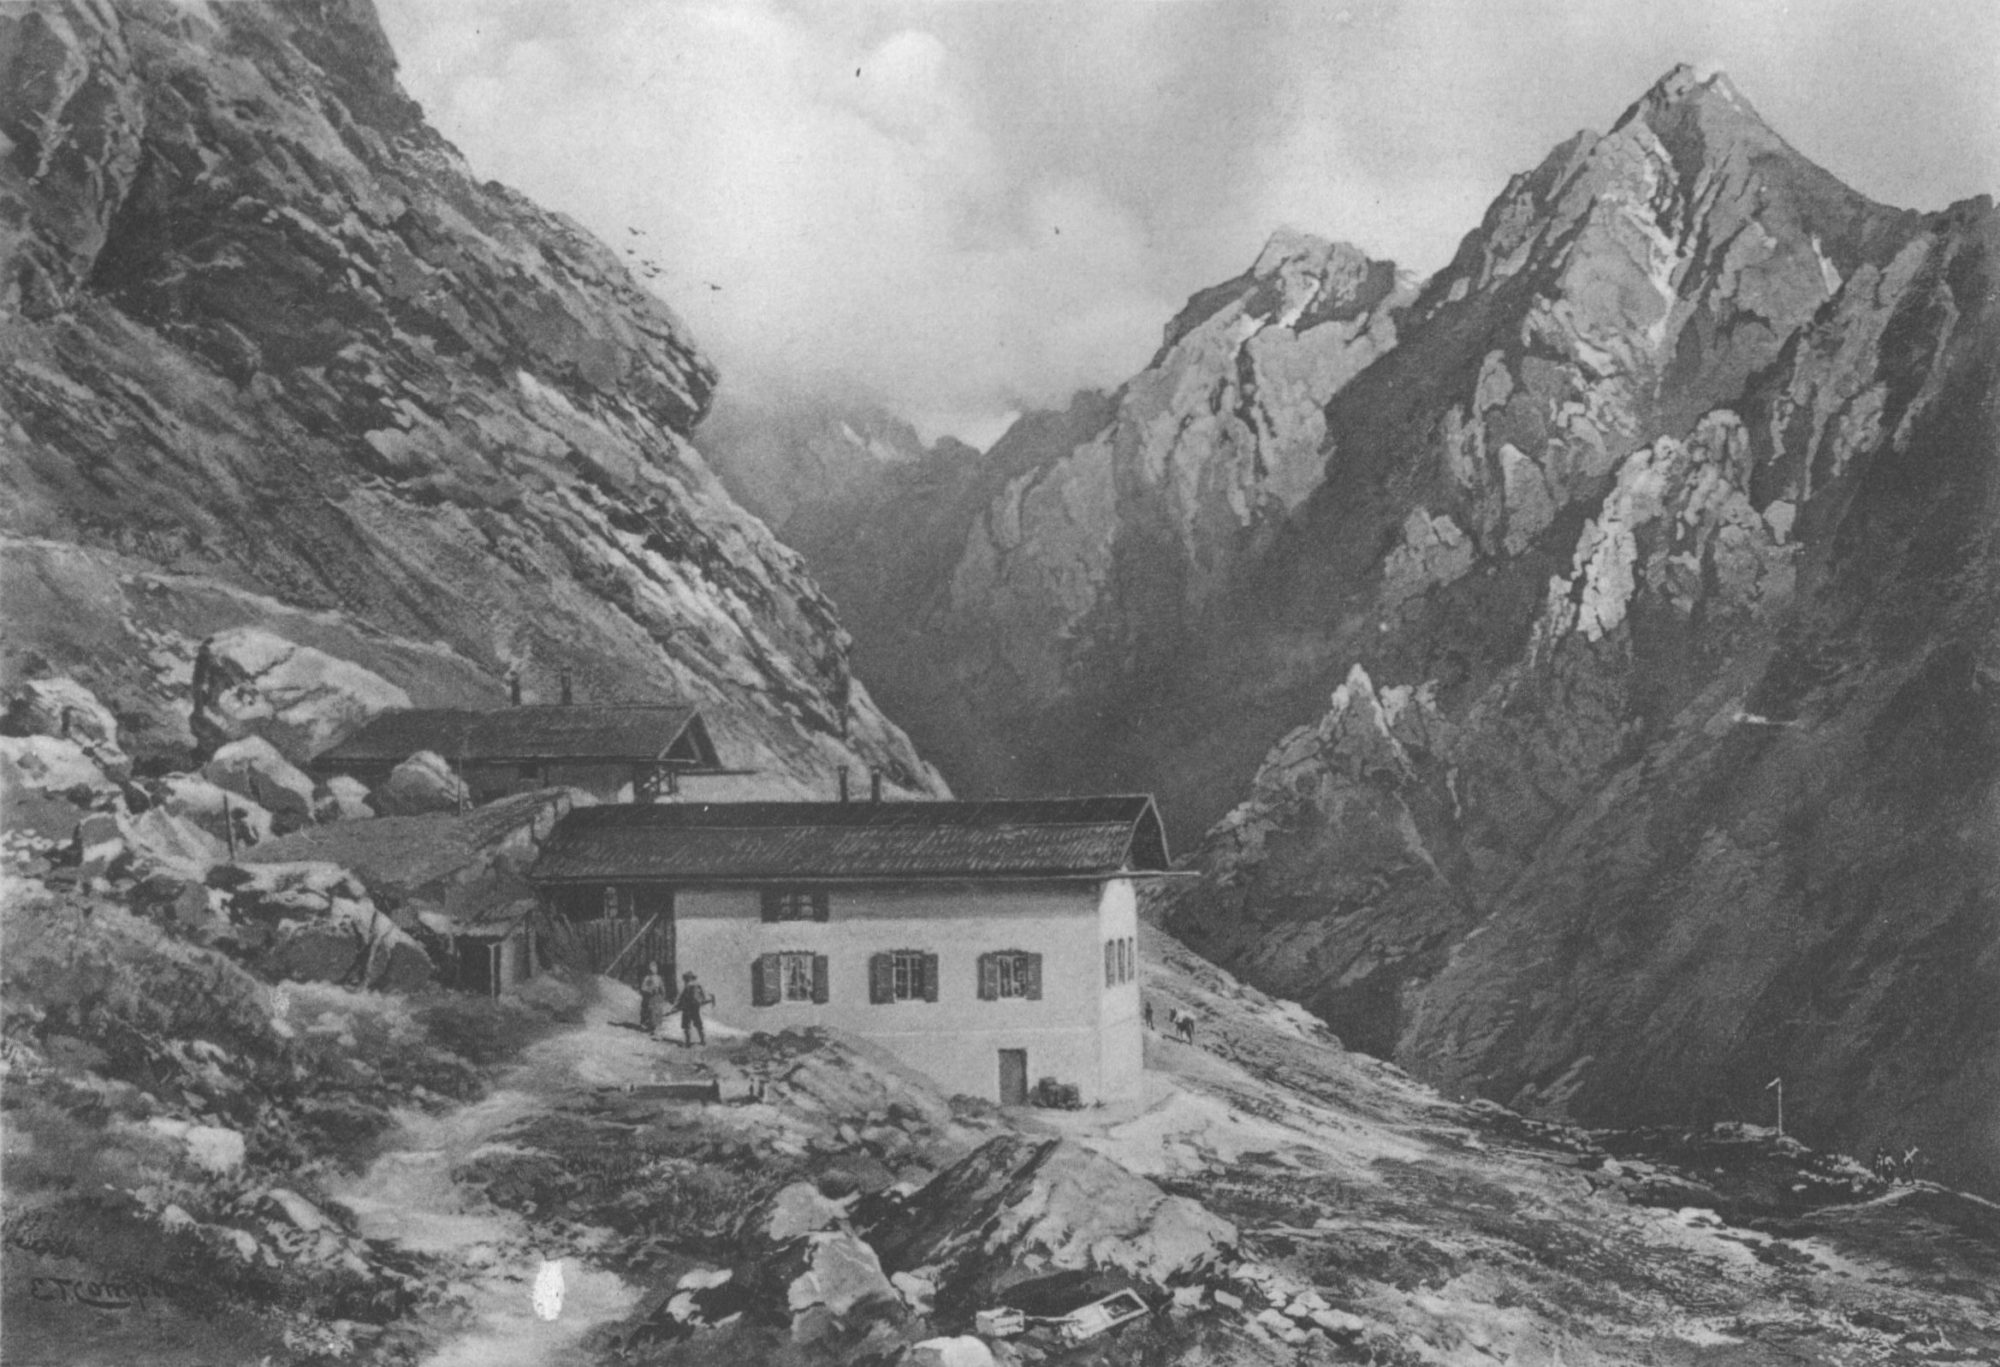 'Knorrhütte in the Weatherstone Mountains', 1890, a hut belonging to the German Alpine Association located at 2052m altitude in the Eastern Alps (Source: Creative Commons).